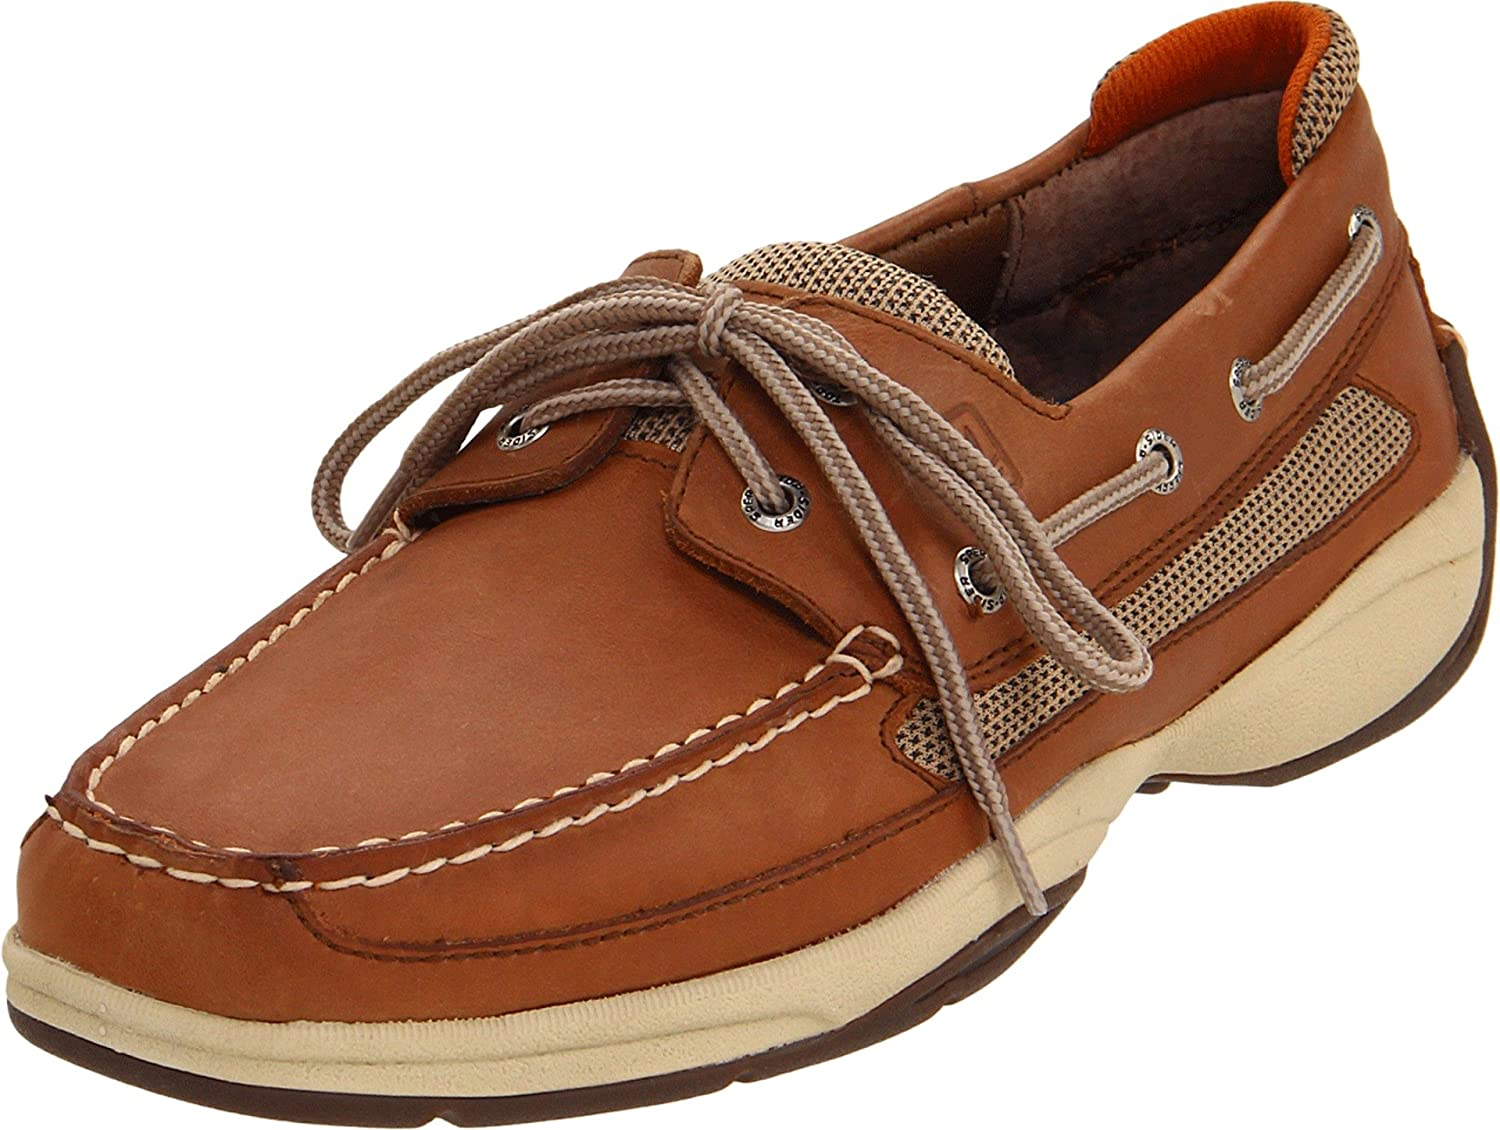 Sperry Mens Lanyard Boat Shoe Loafers Slip Ons D Island Shoes On Comfort Leather Dark Brown